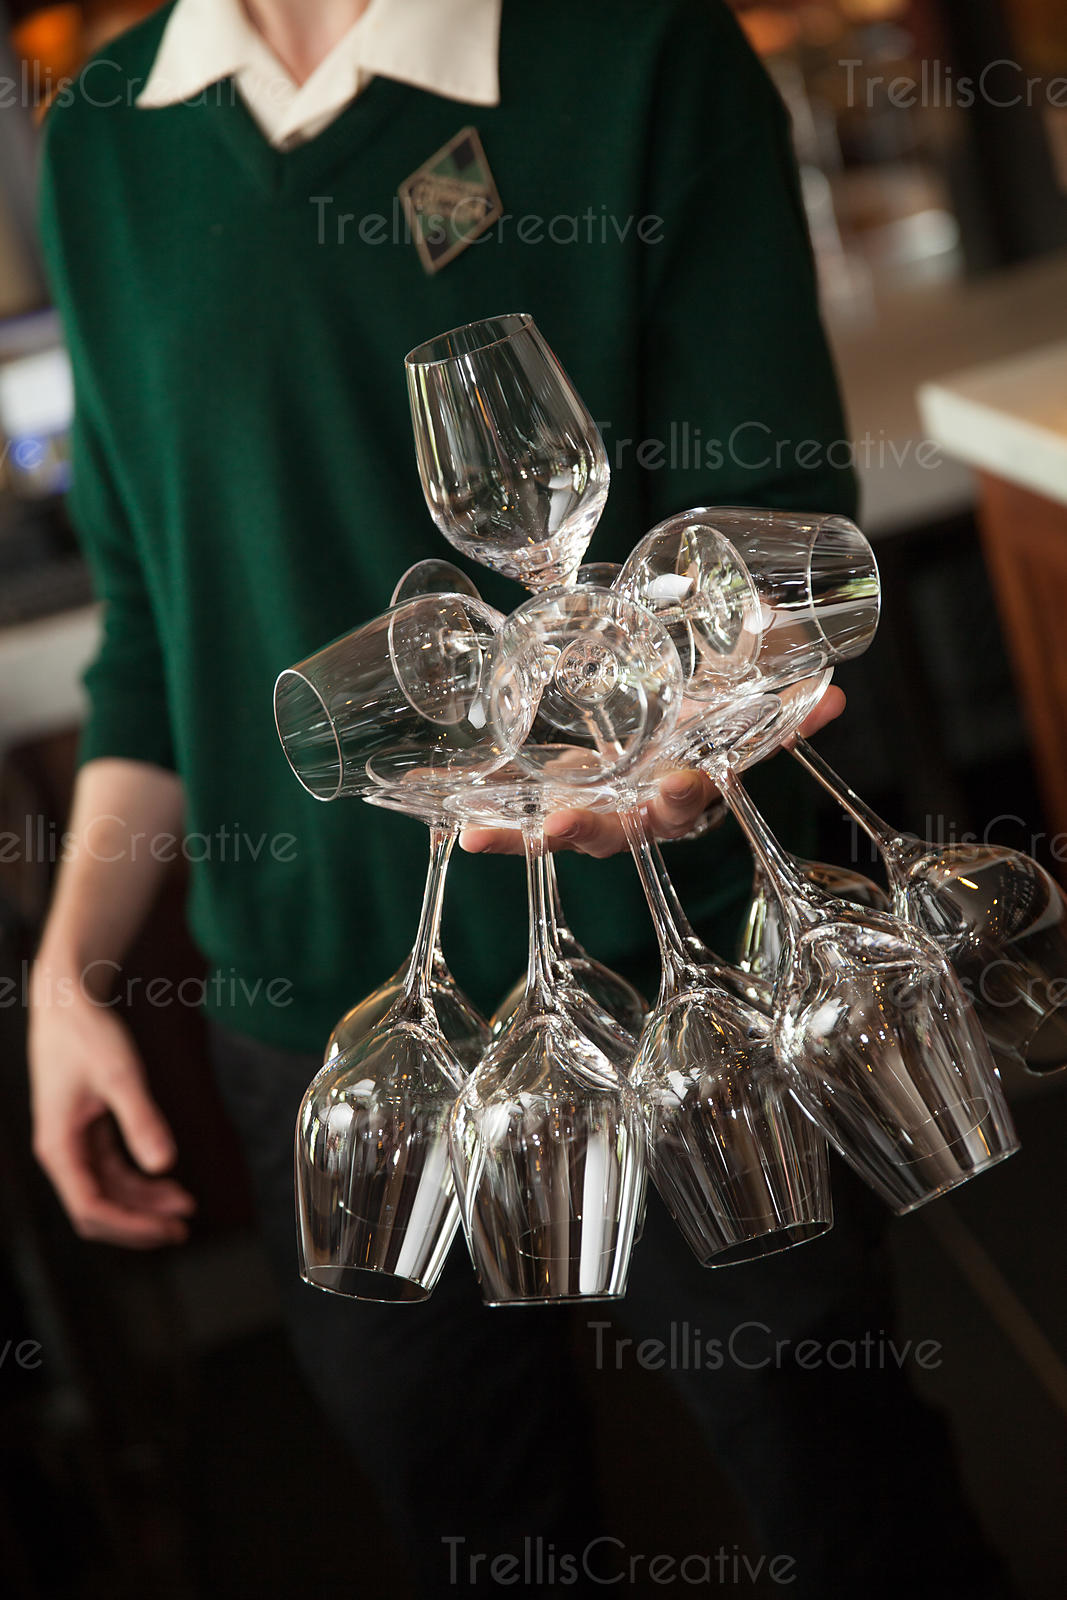 Person balancing a stack of wine glasses in one hand